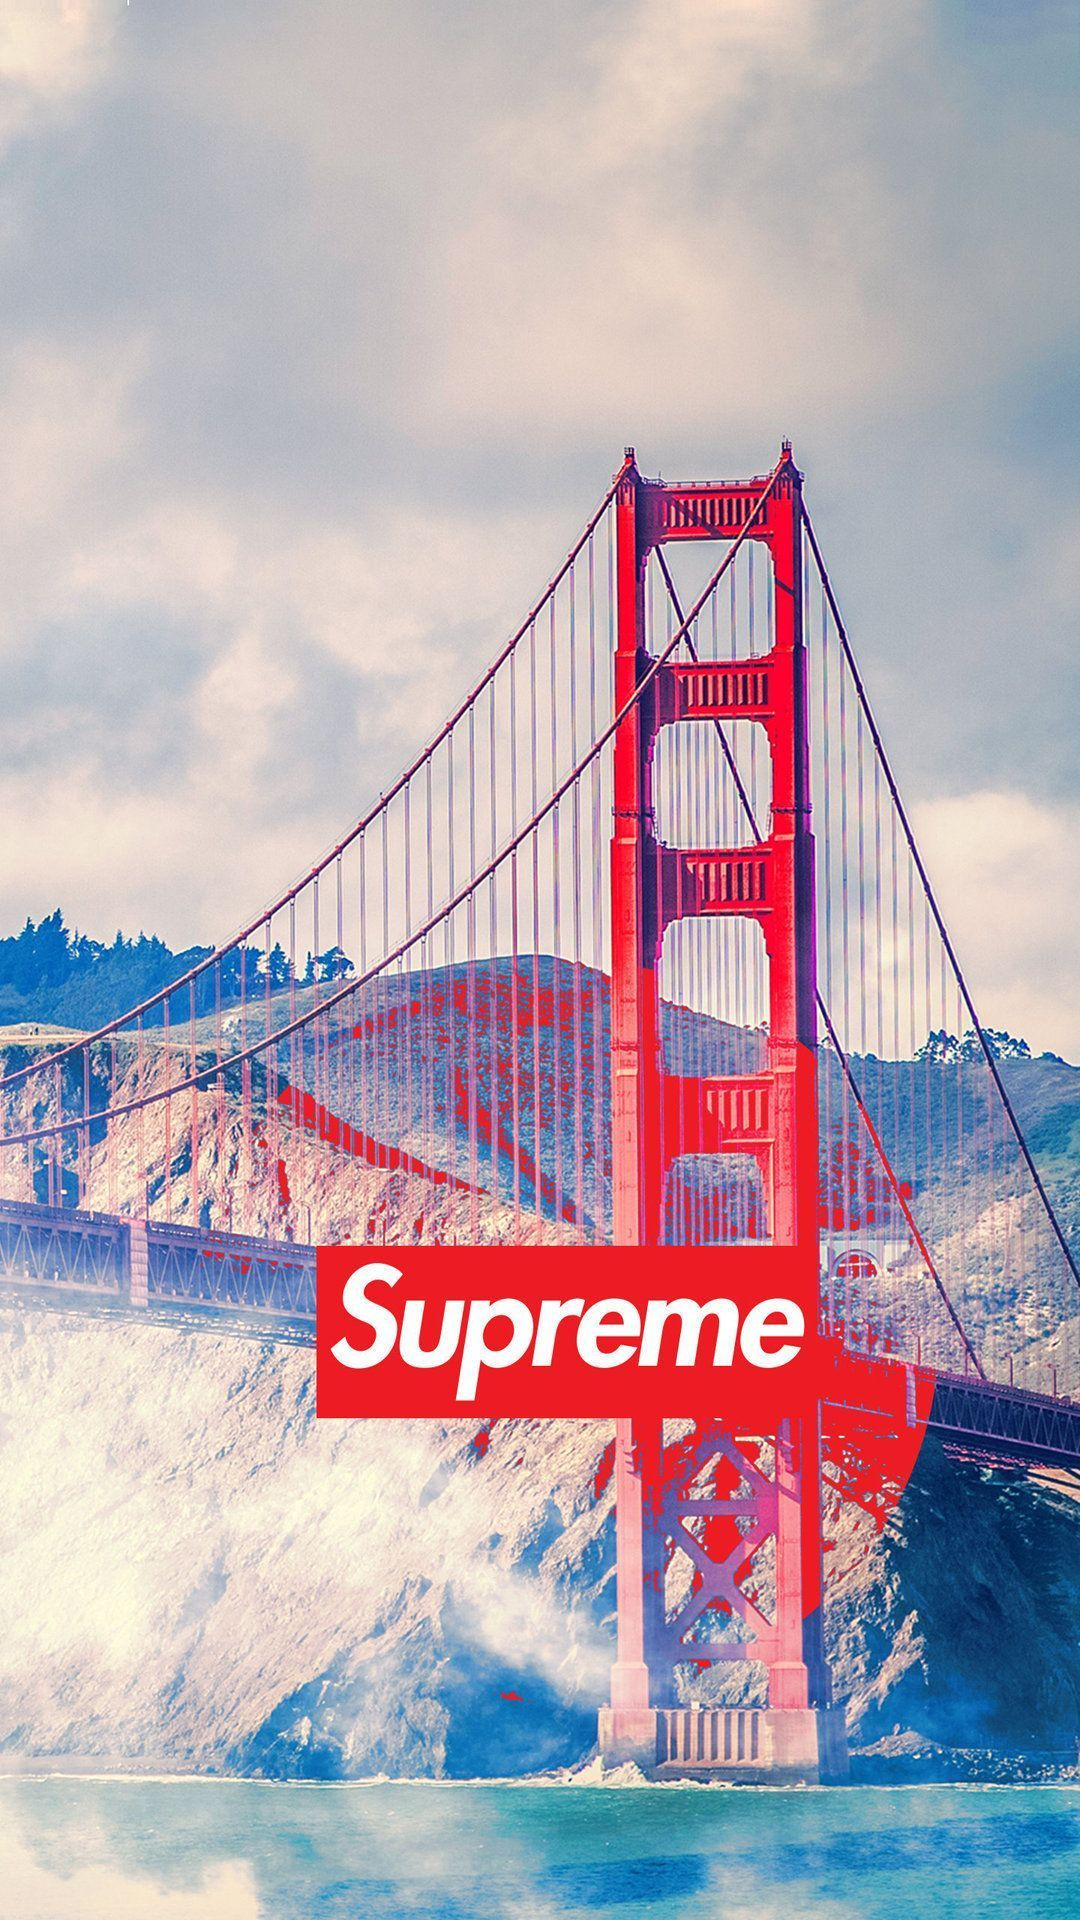 Anime Supreme 1080x Wallpapers - Wallpaper Cave